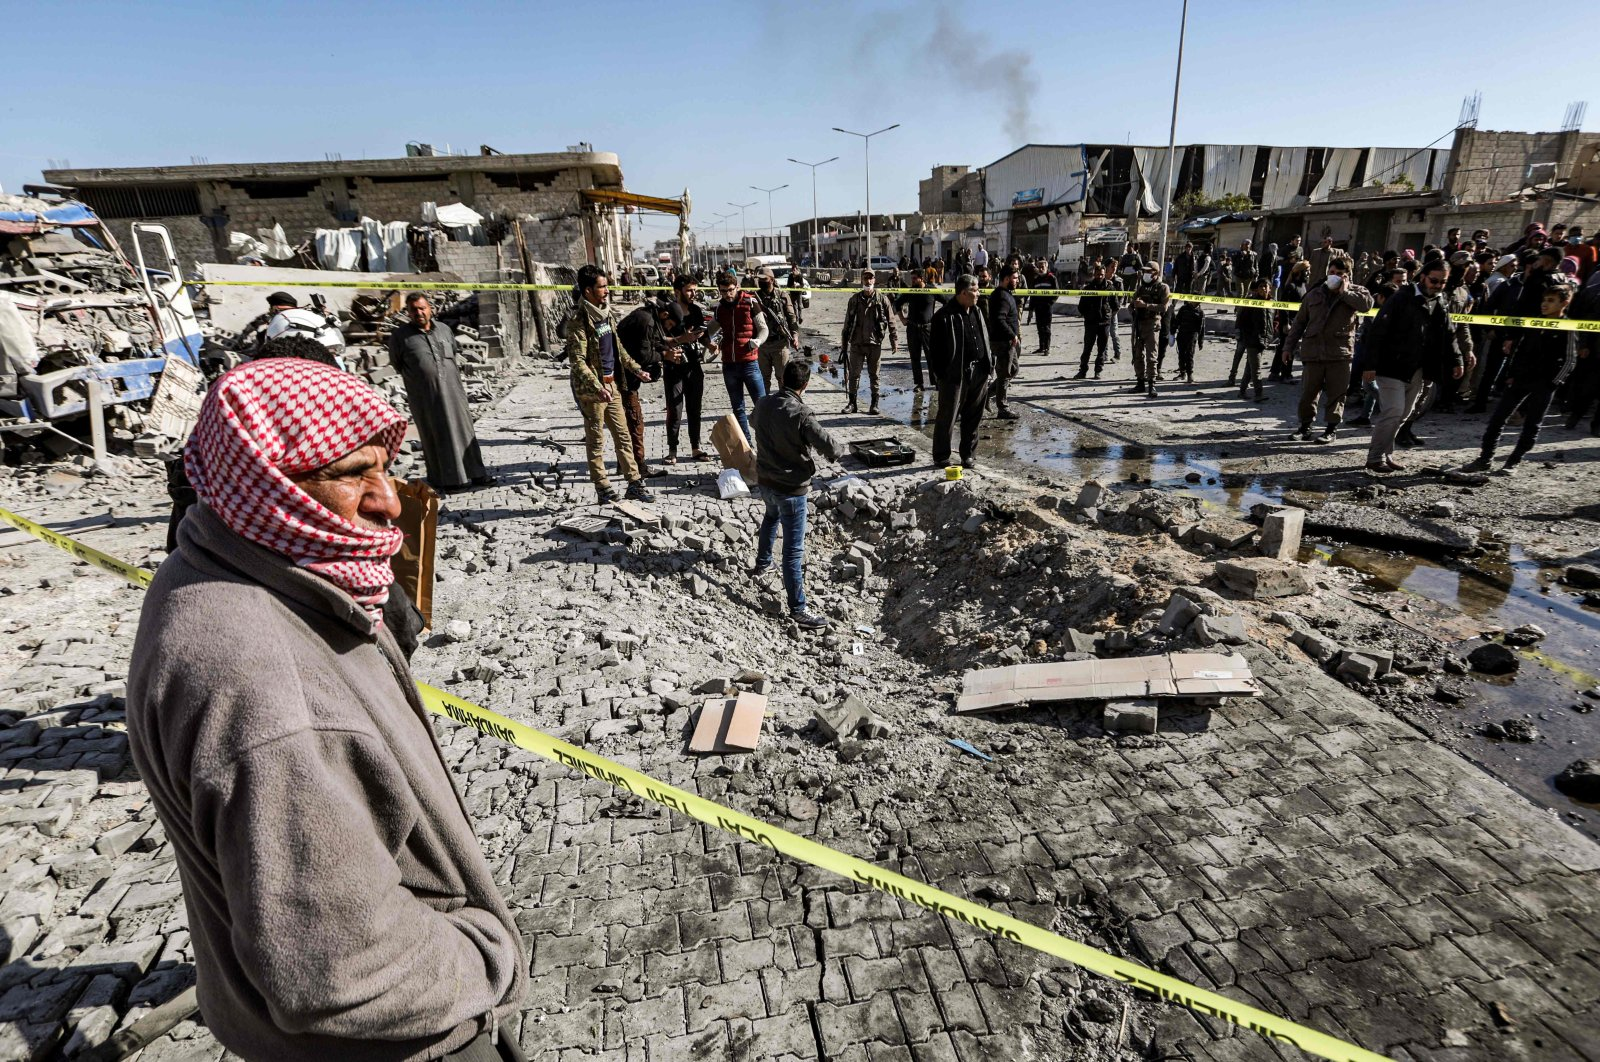 People inspect the scene of a car bomb in the northern Syrian town of al-Bab in Aleppo province, Nov. 24, 2020. (AFP Photo)